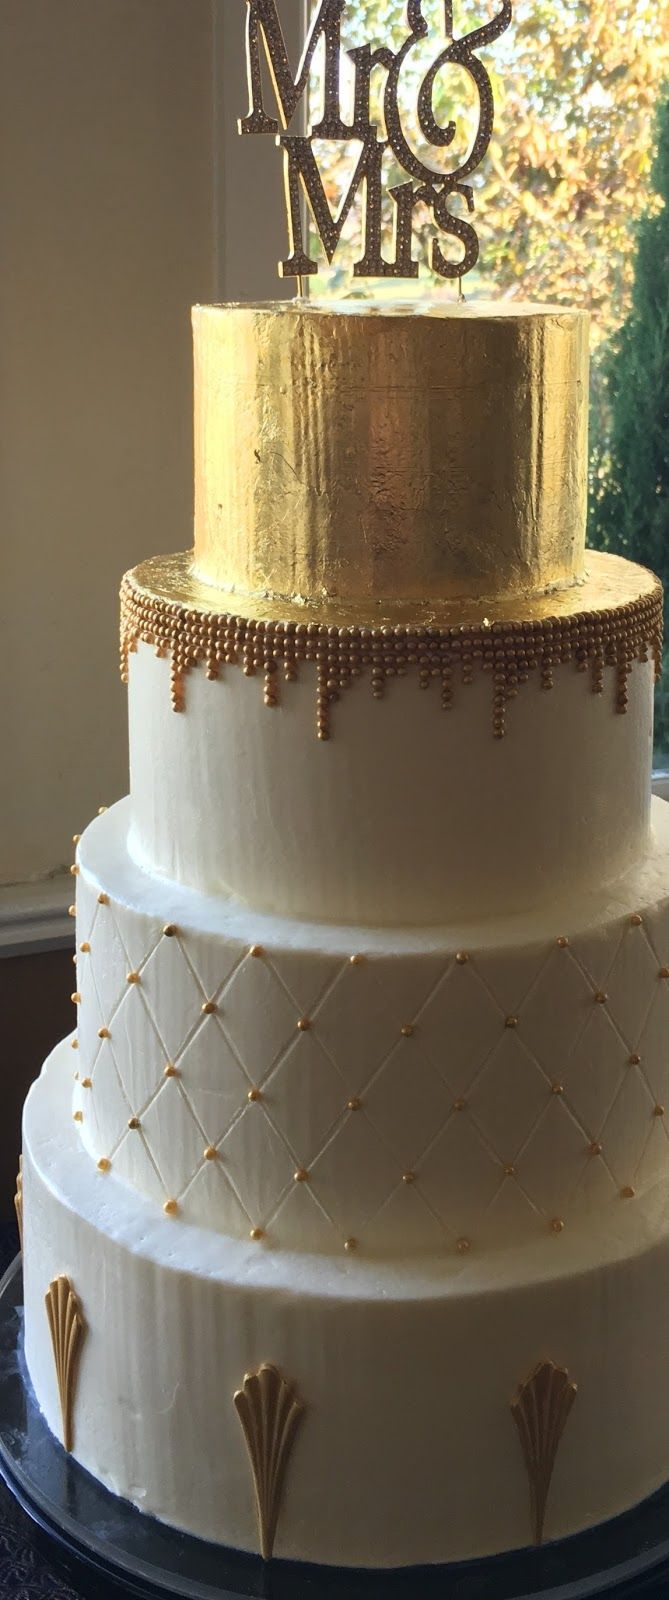 Art Deco Wedding Cake   As a Buttercream Wedding Cake baker, I get lots of requests to add gold and silver to make the wedding cakes shine...